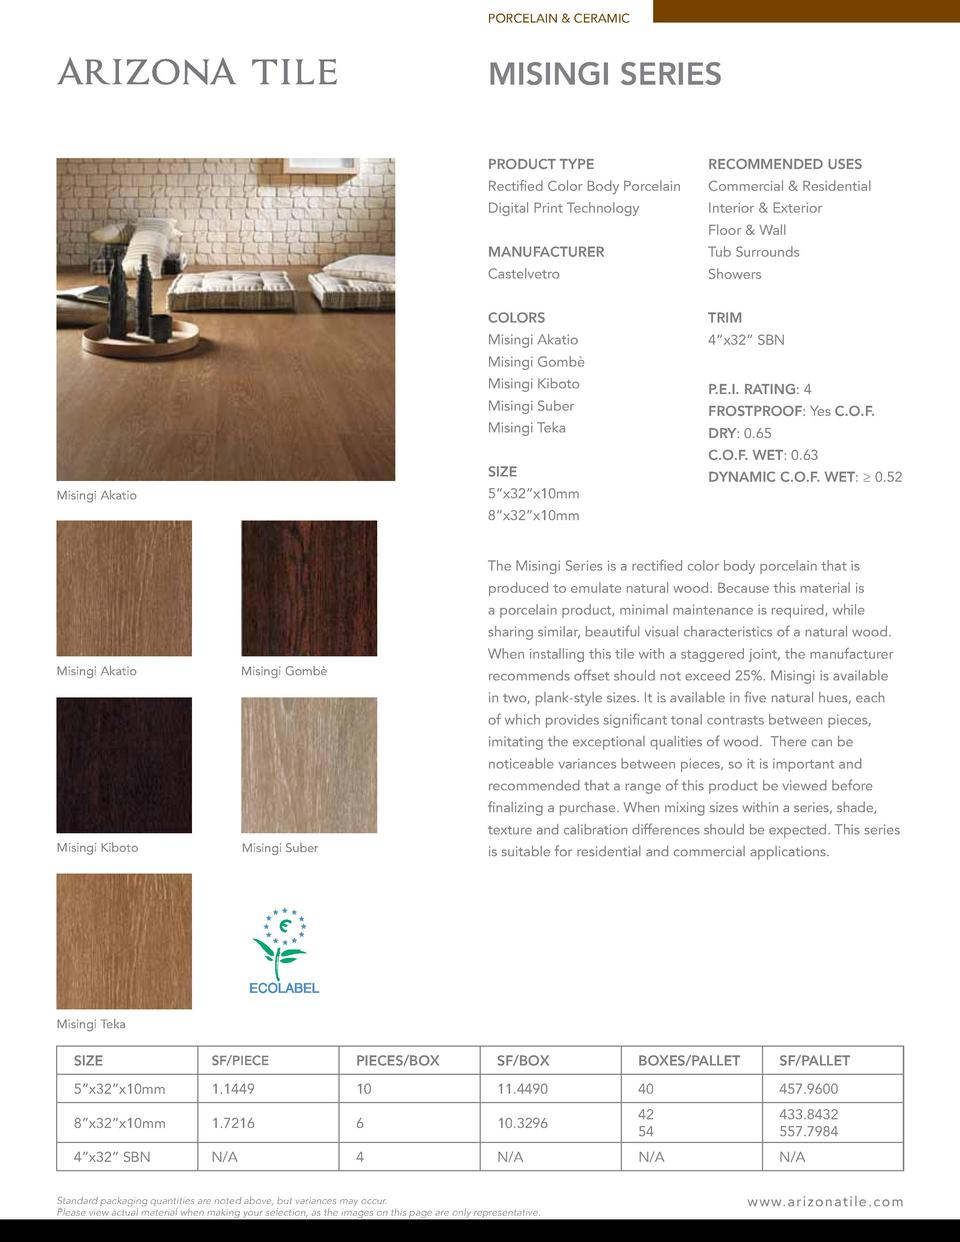 PORCELAIN   CERAMIC  MISINGI SERIES PRODUCT TYPE  RECOMMENDED USES  Rectified Color Body Porcelain  Commercial   Residenti...